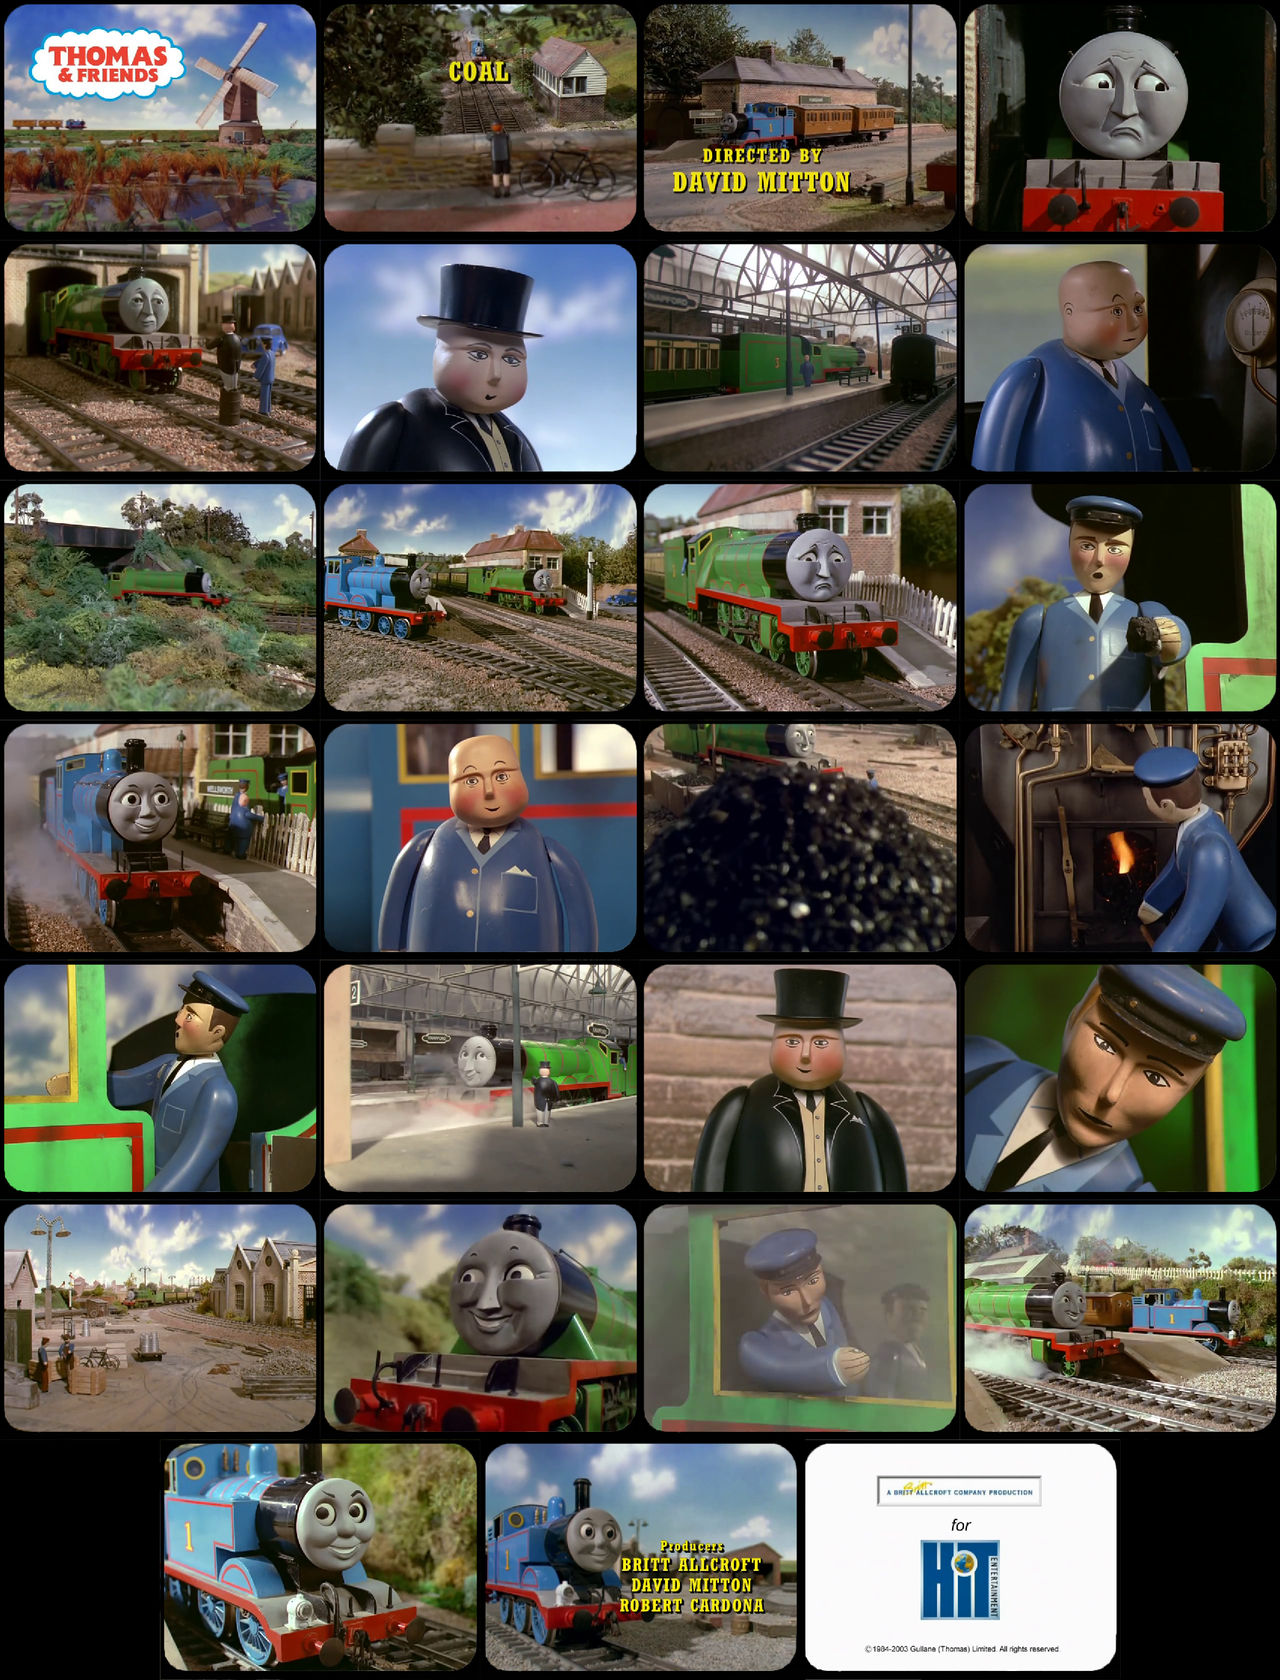 Thomas and Friends Episode 18 Tele-Snaps